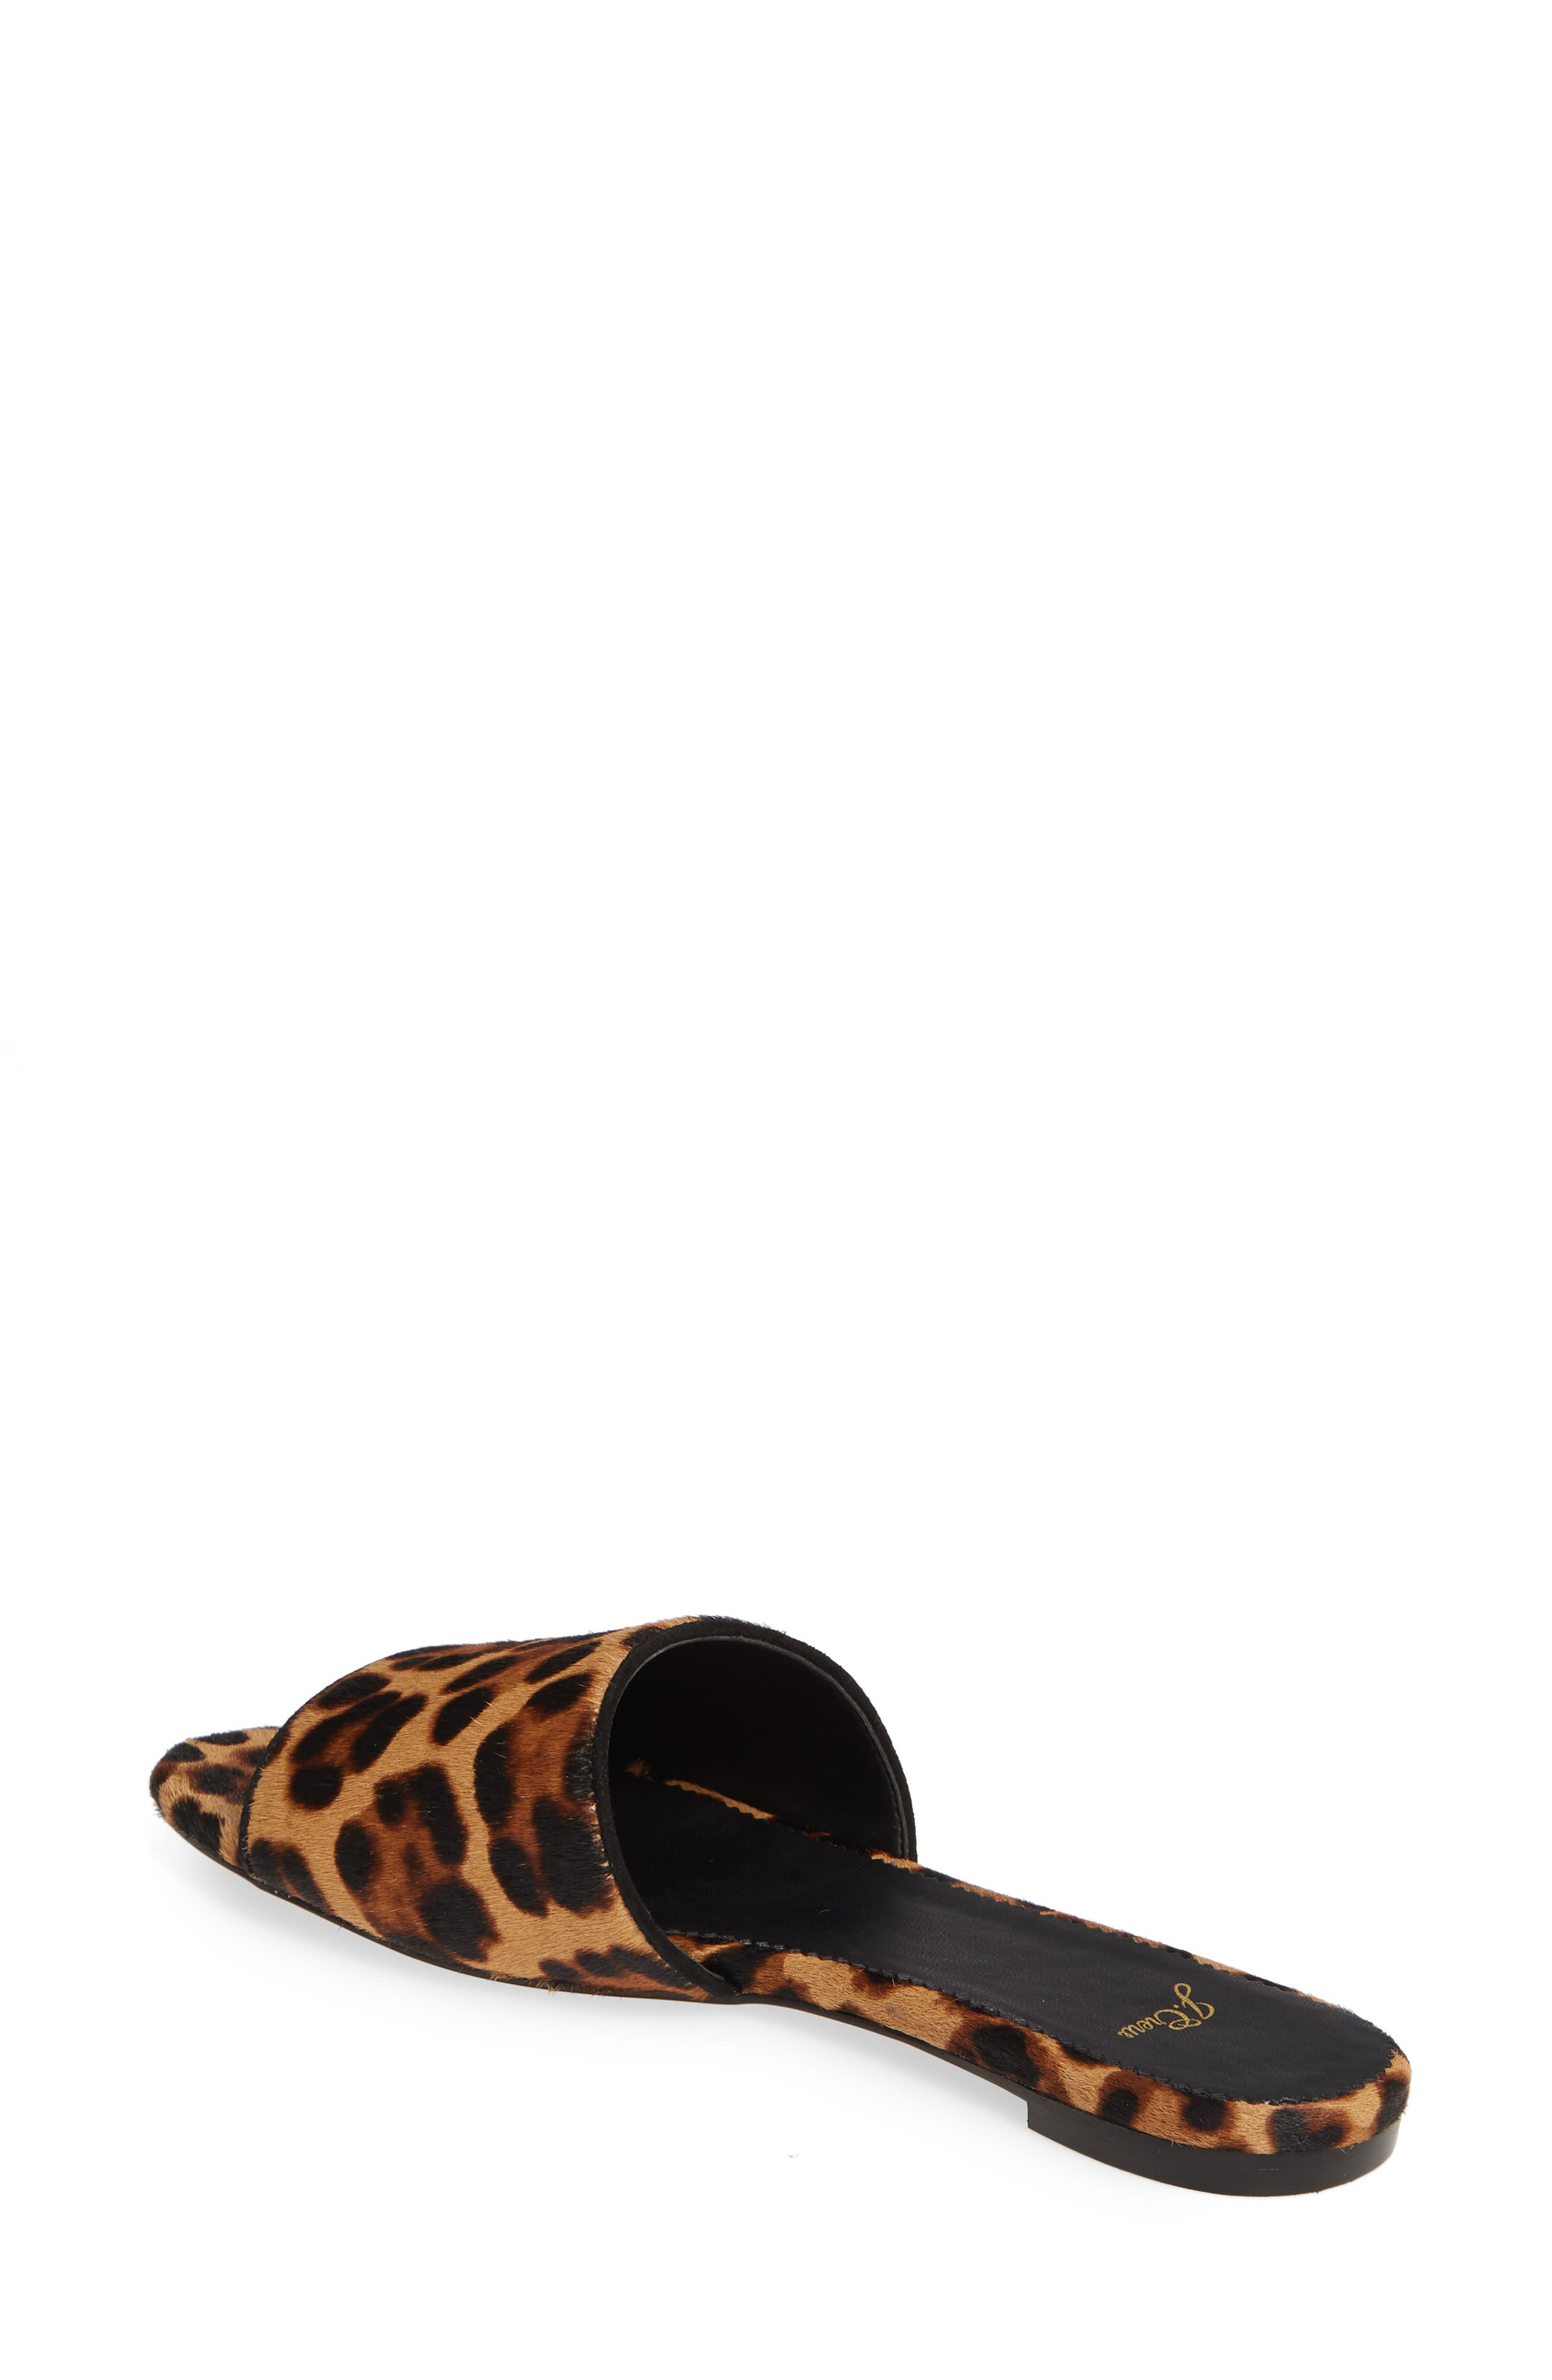 J.CREW, Cora Leopard Print Calf Hair Slide Sandal, Alternate thumbnail 2, color, LEOPARD PRINT CALF HAIR